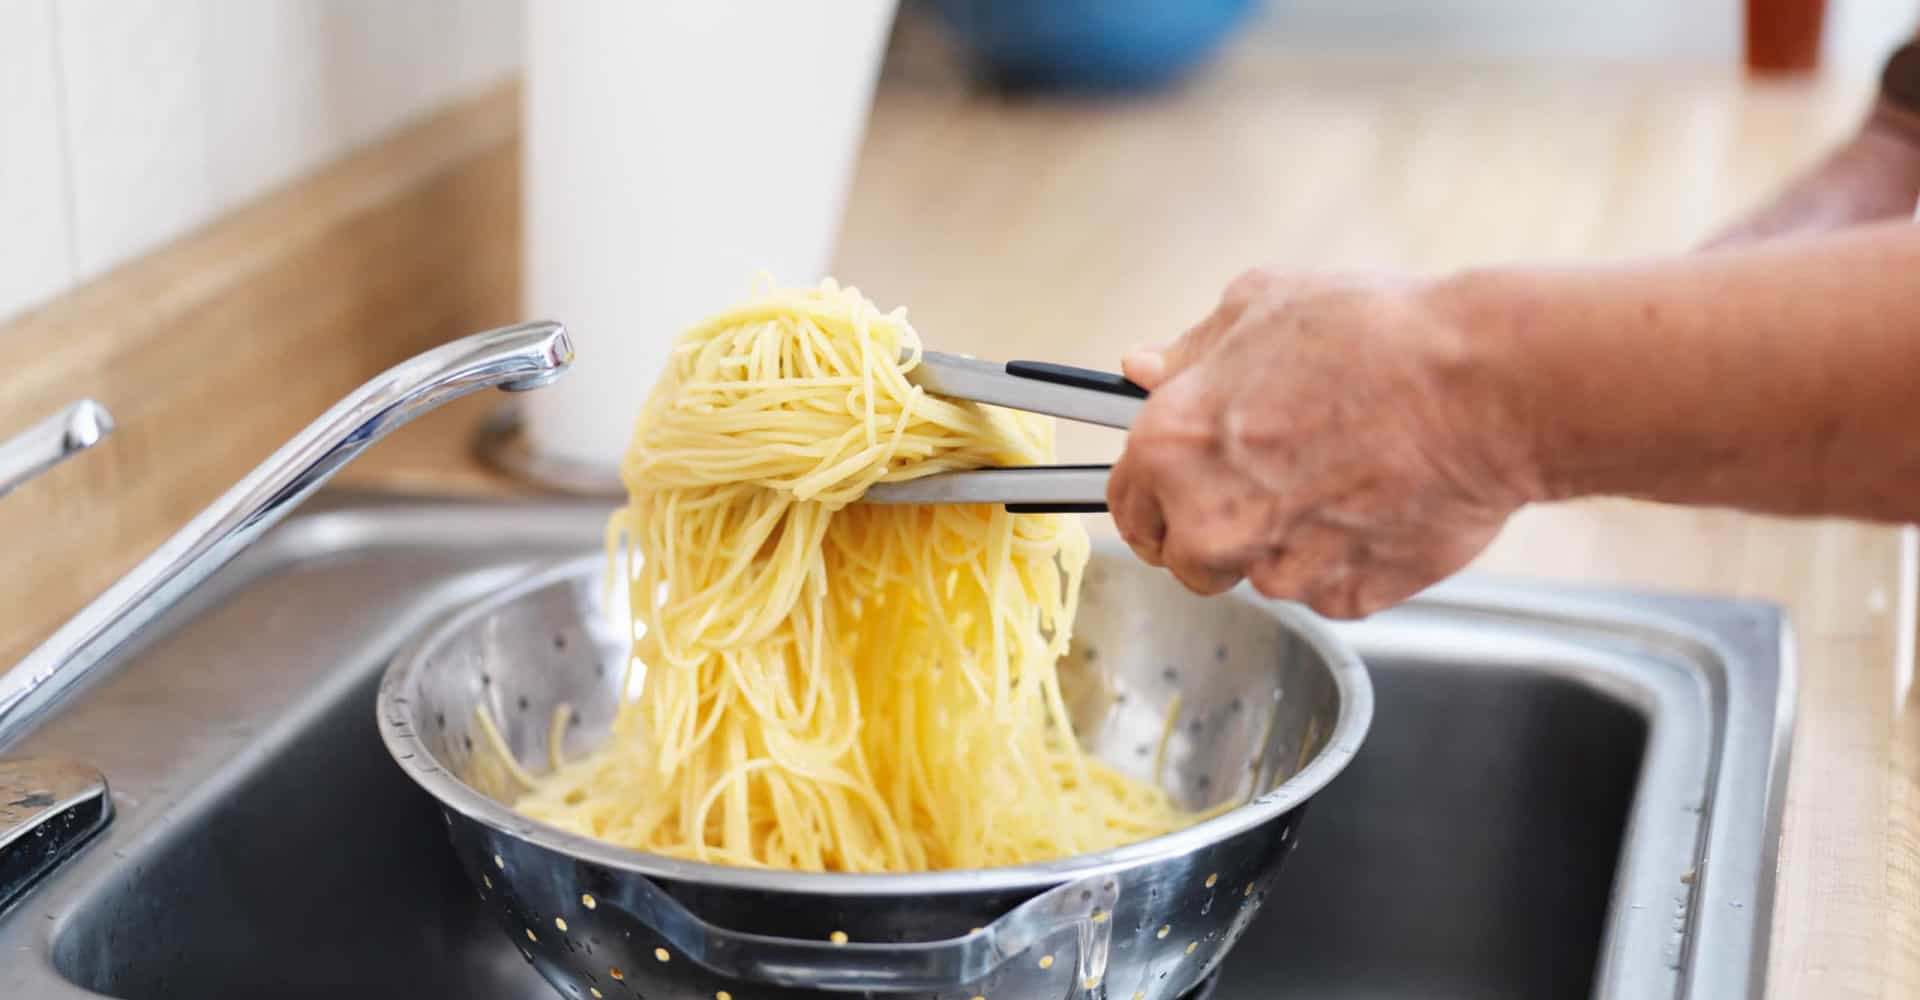 You should never drain your pasta in the sink, here's why